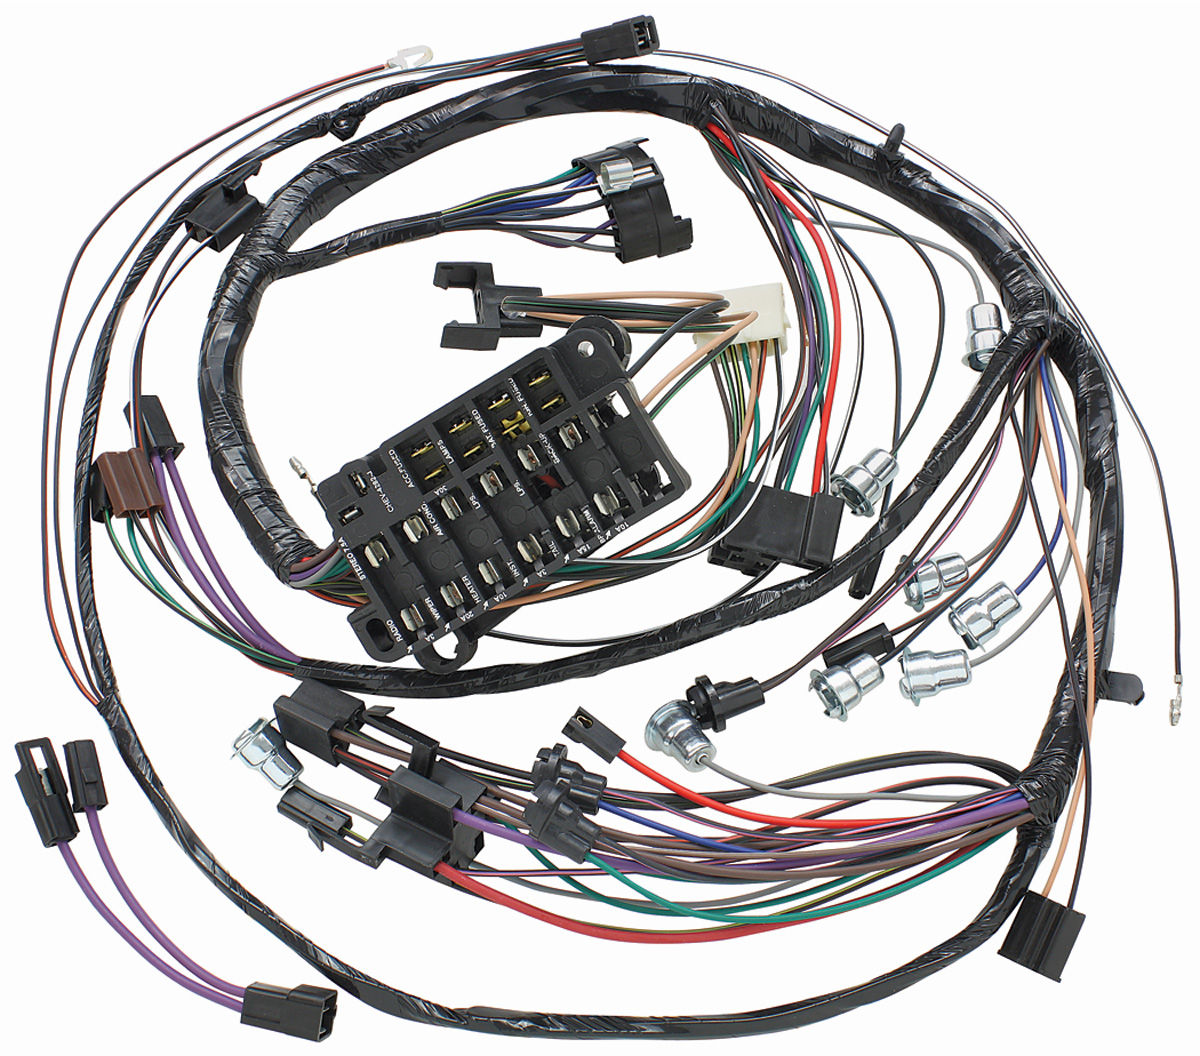 67 Chevelle Dash Fuse Box Wiring Library El Camino 71 Schematic Diagrams Rh Bestkodiaddons Co 70